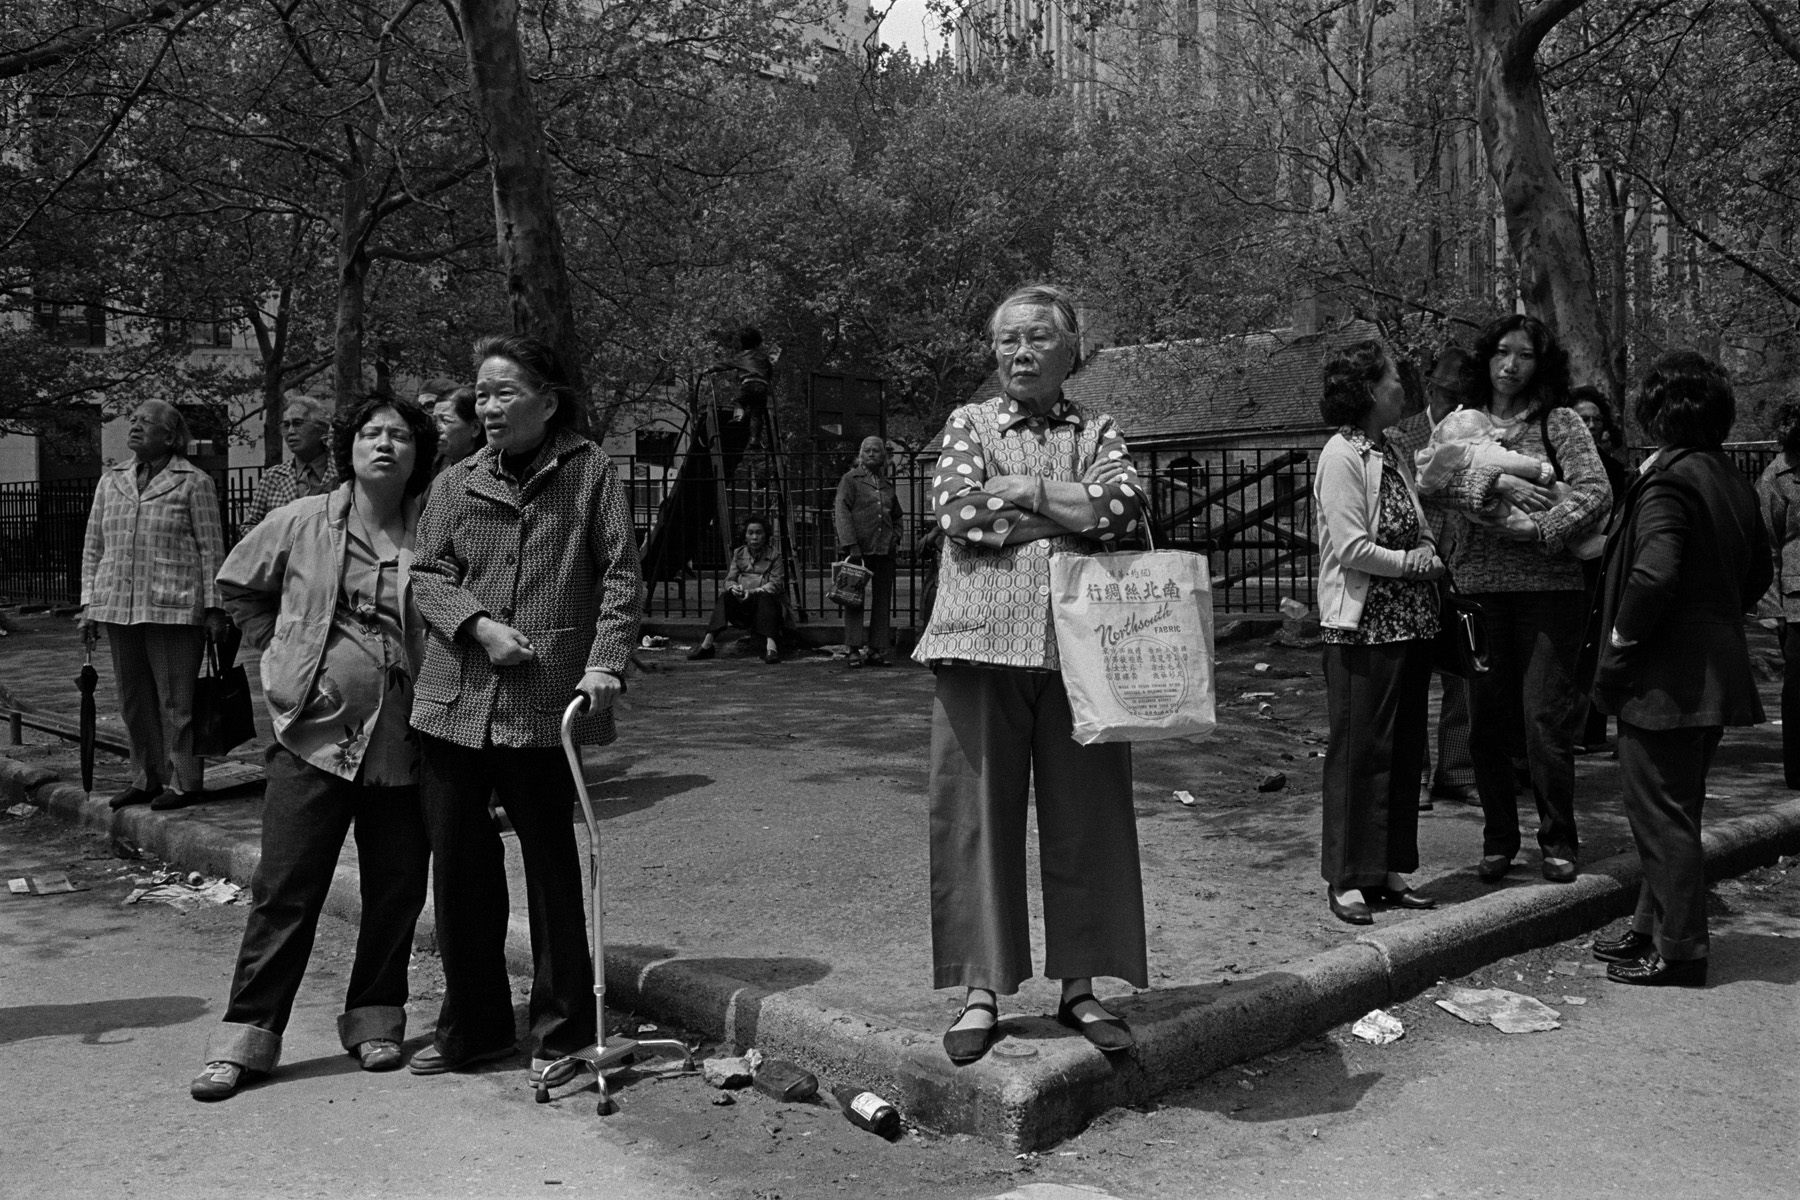 Columbus Park, New York Chinatown,1983.The women in this photograph were watching the funeral proceedings depicted in the previous photograph, directly across the street.